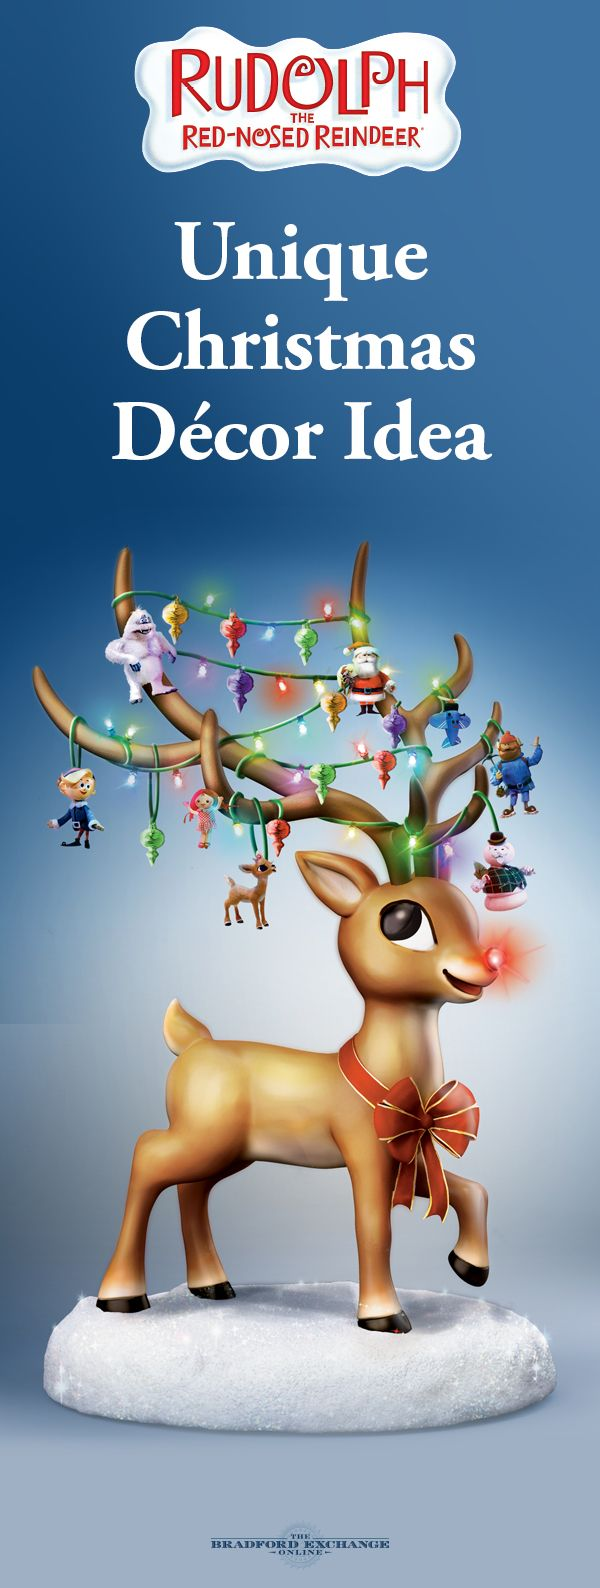 Uncategorized Rudolph The Red Nosed Reindeer Song Video best 25 red nosed reindeer song ideas on pinterest rudolph the figurine